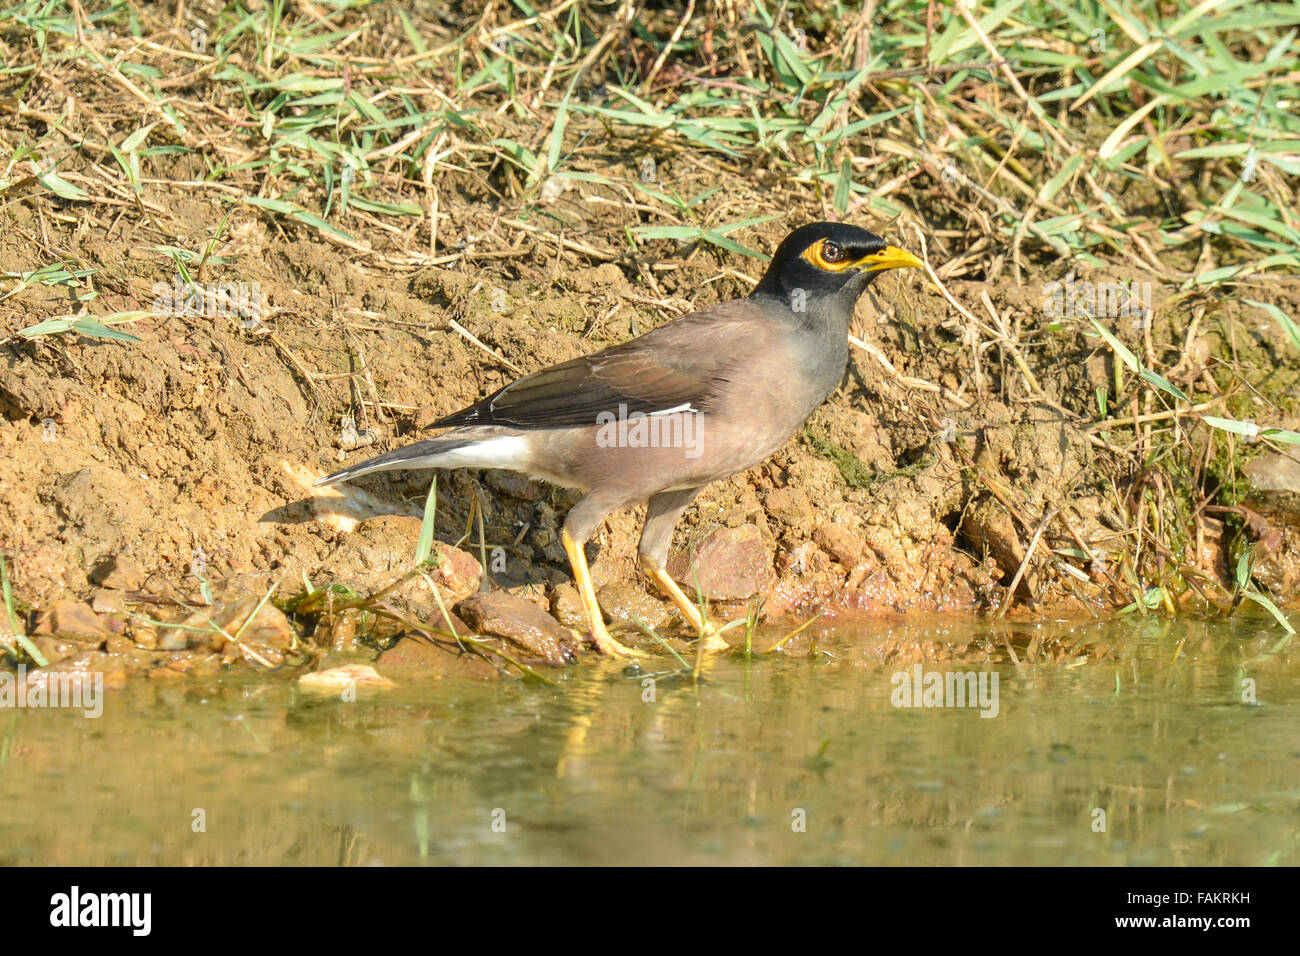 The common myna (Acridotheres tristis), sometimes spelled mynah, is a member of the family Sturnidae - Stock Image